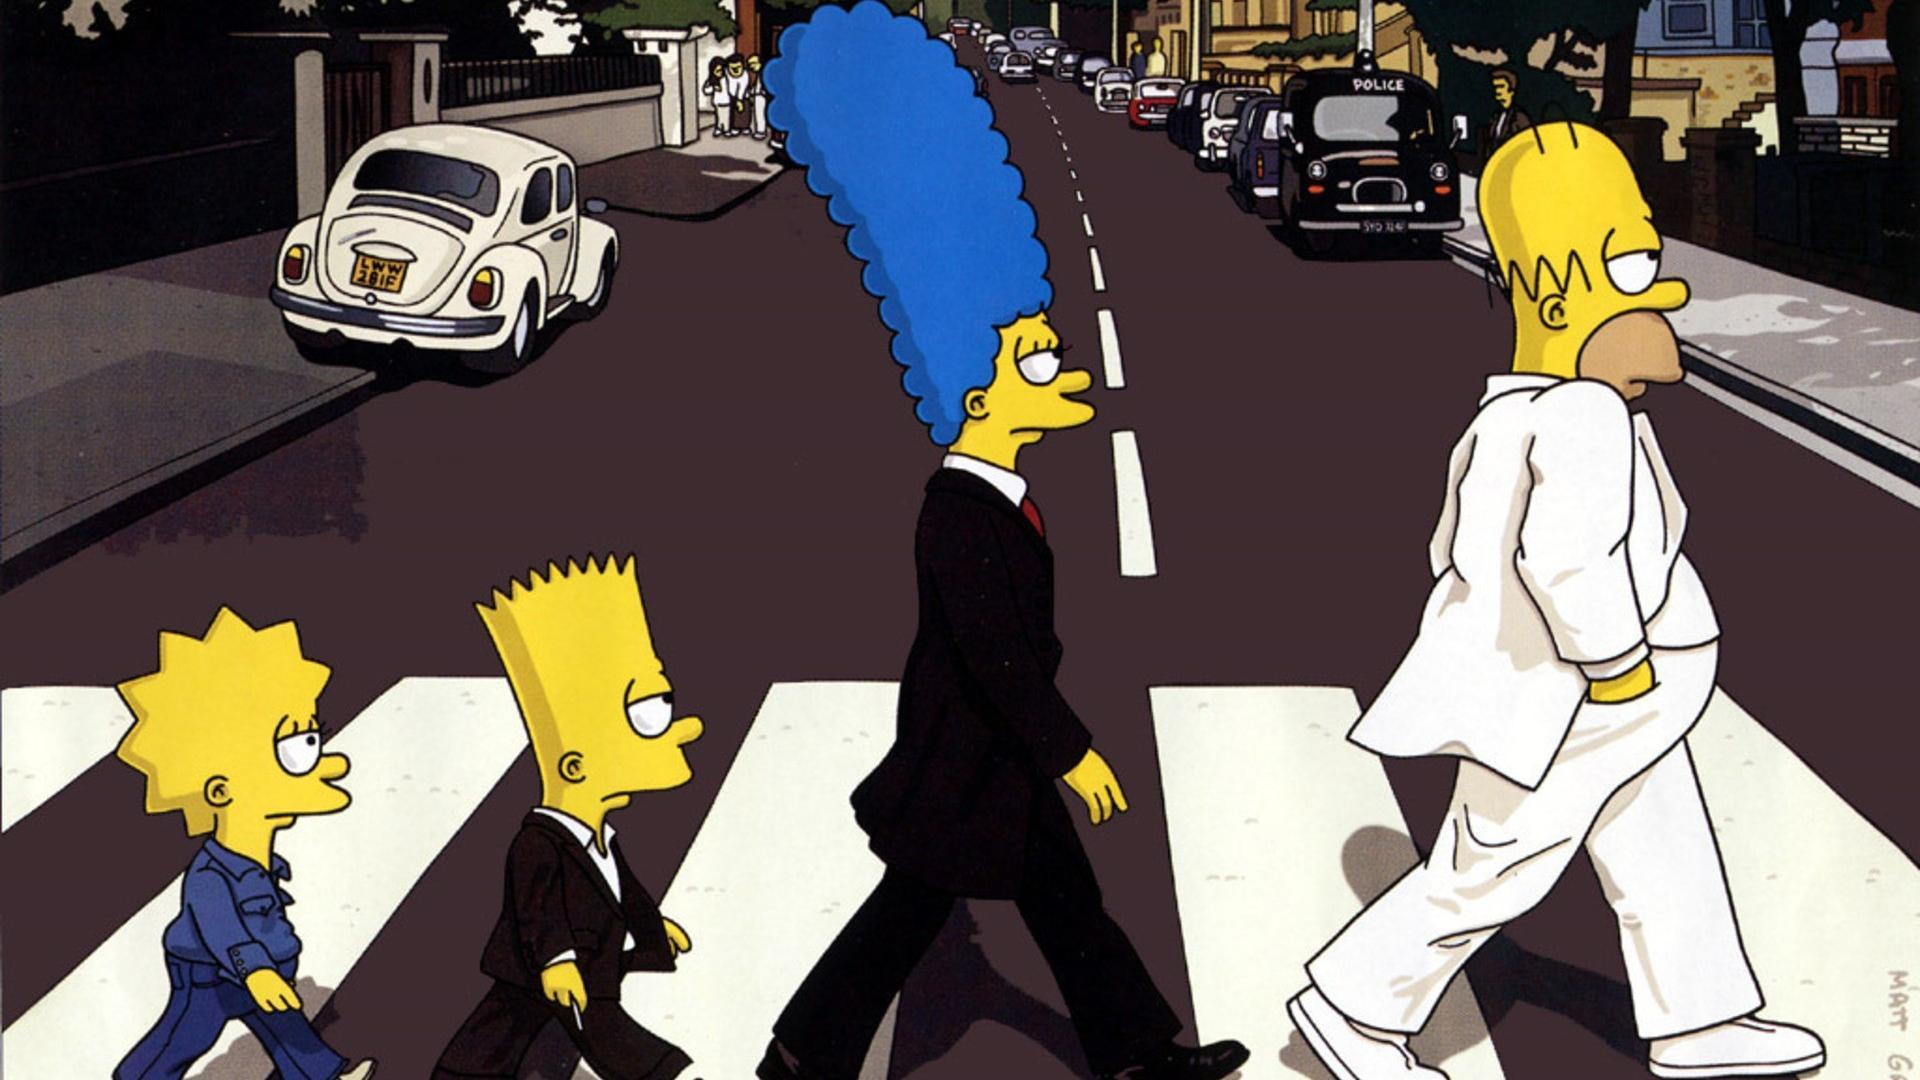 The simpsons abbey road wallpapers wallpaper cave - The simpsons abbey road wallpaper ...